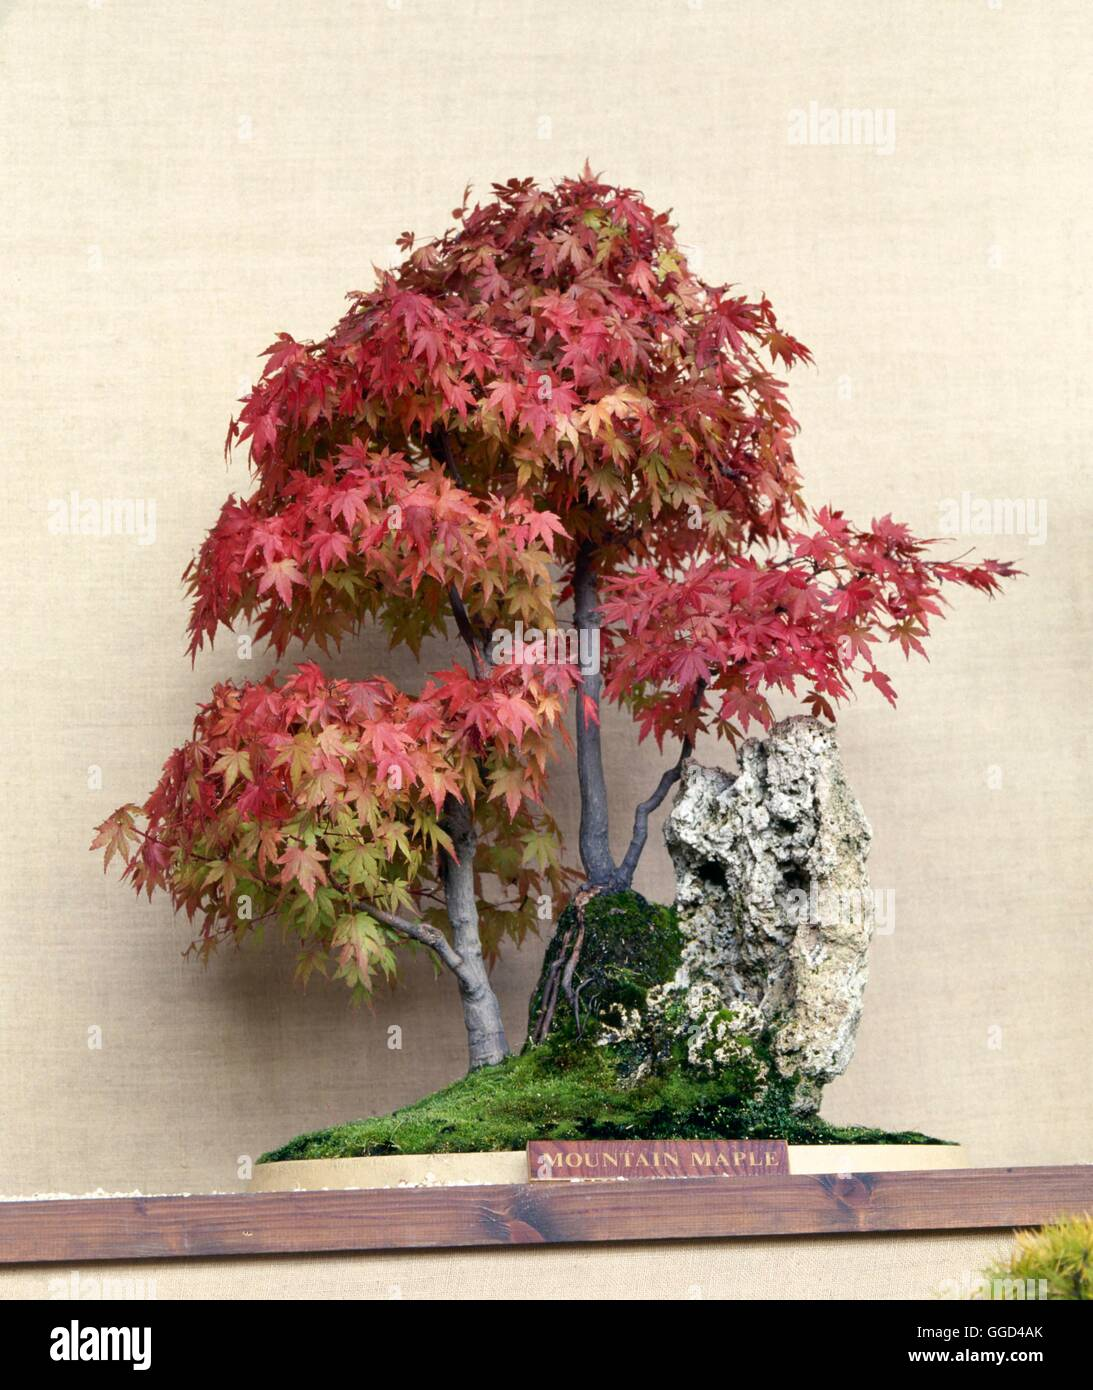 Bonsai Acer Spicatum Mountain Maple Bon061338 Stock Photo